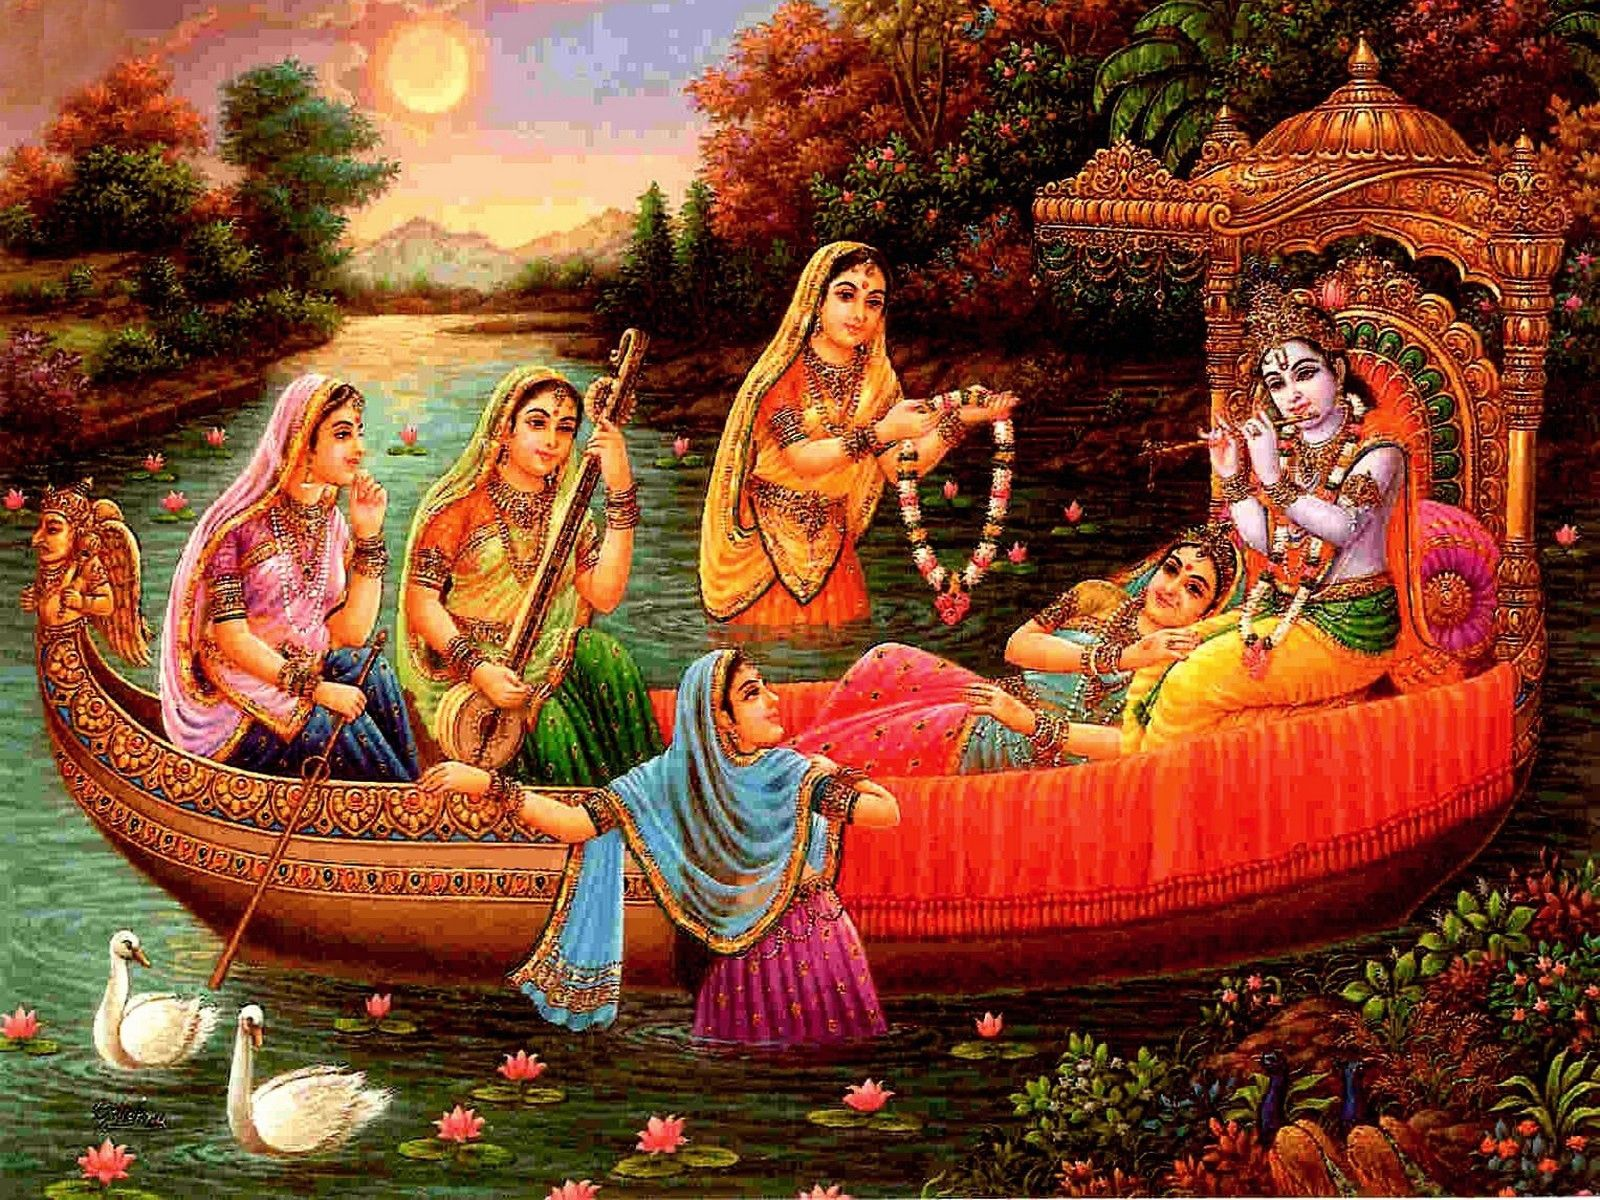 Wallpaper download krishna bhagwan - Krishna Bhagvan With Radha And Gopi Best 1080p Photo Art